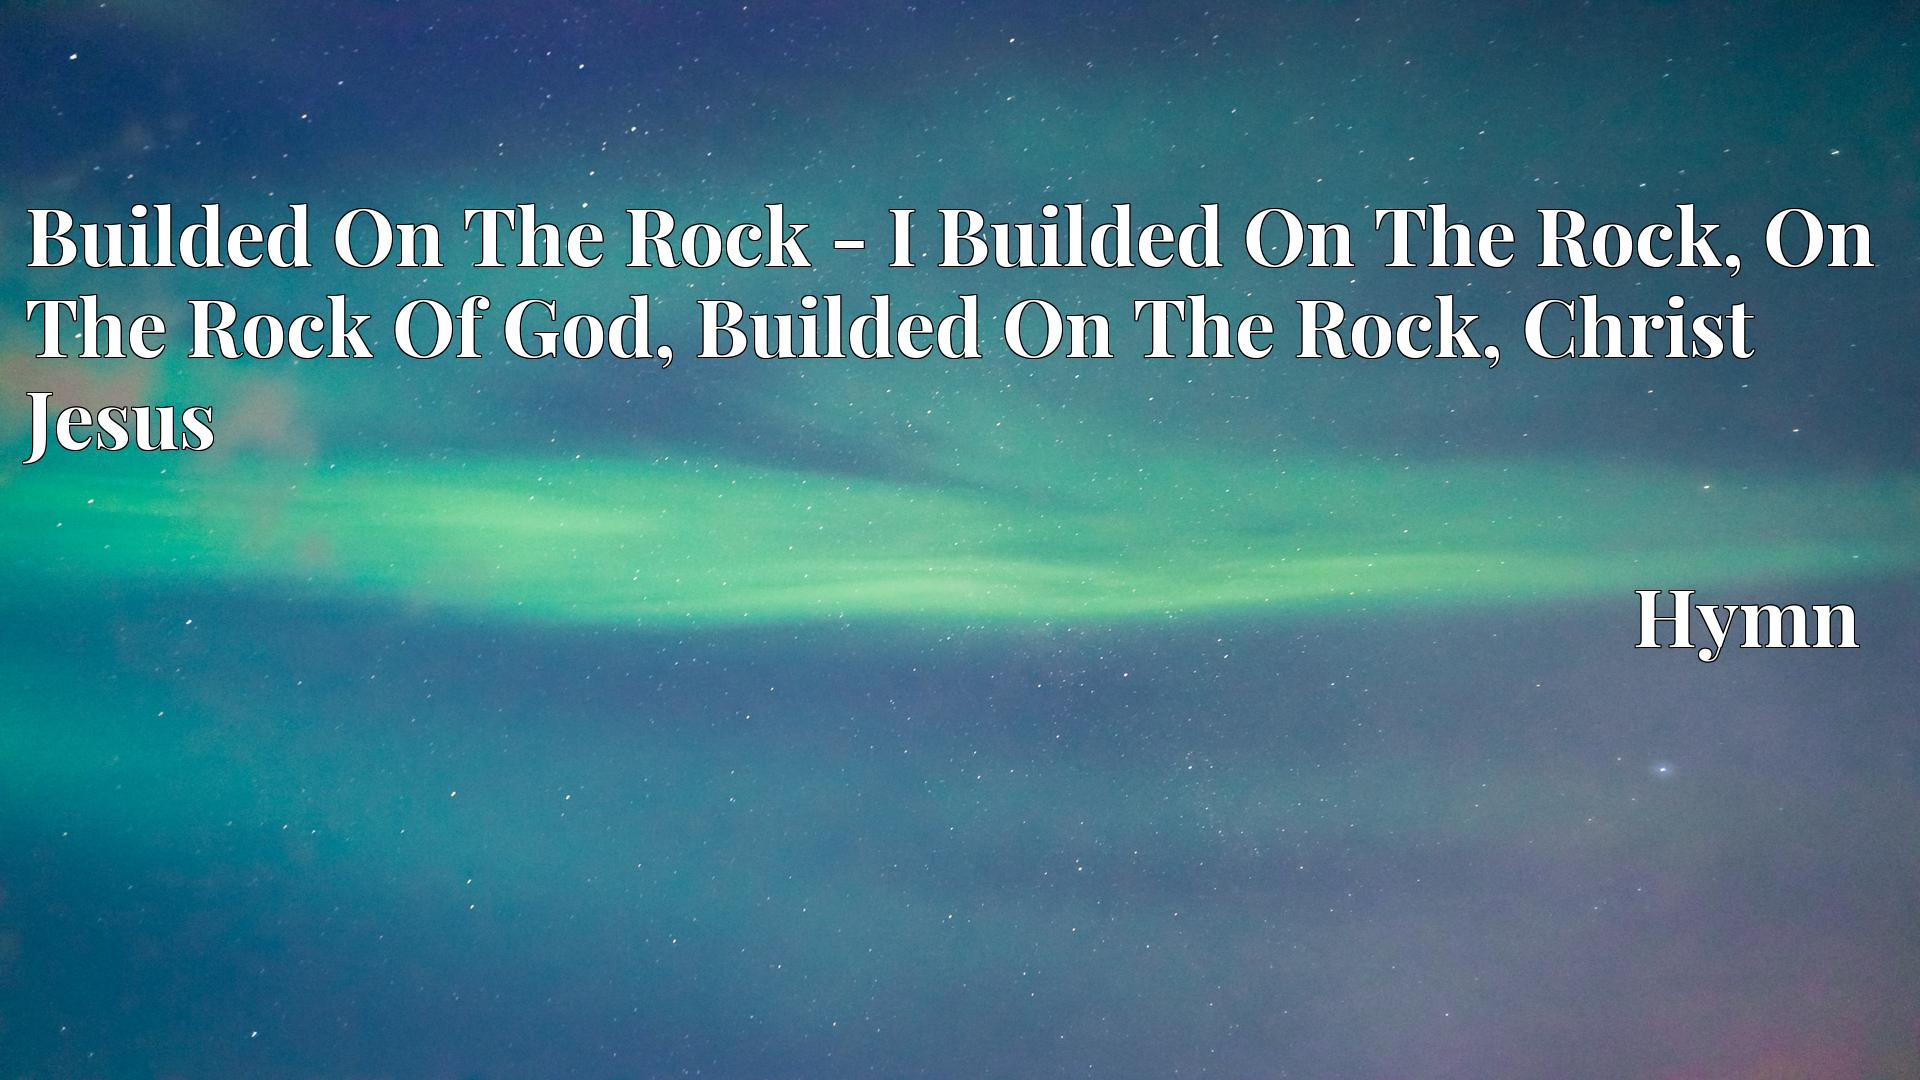 Builded On The Rock - I Builded On The Rock, On The Rock Of God, Builded On The Rock, Christ Jesus Hymn